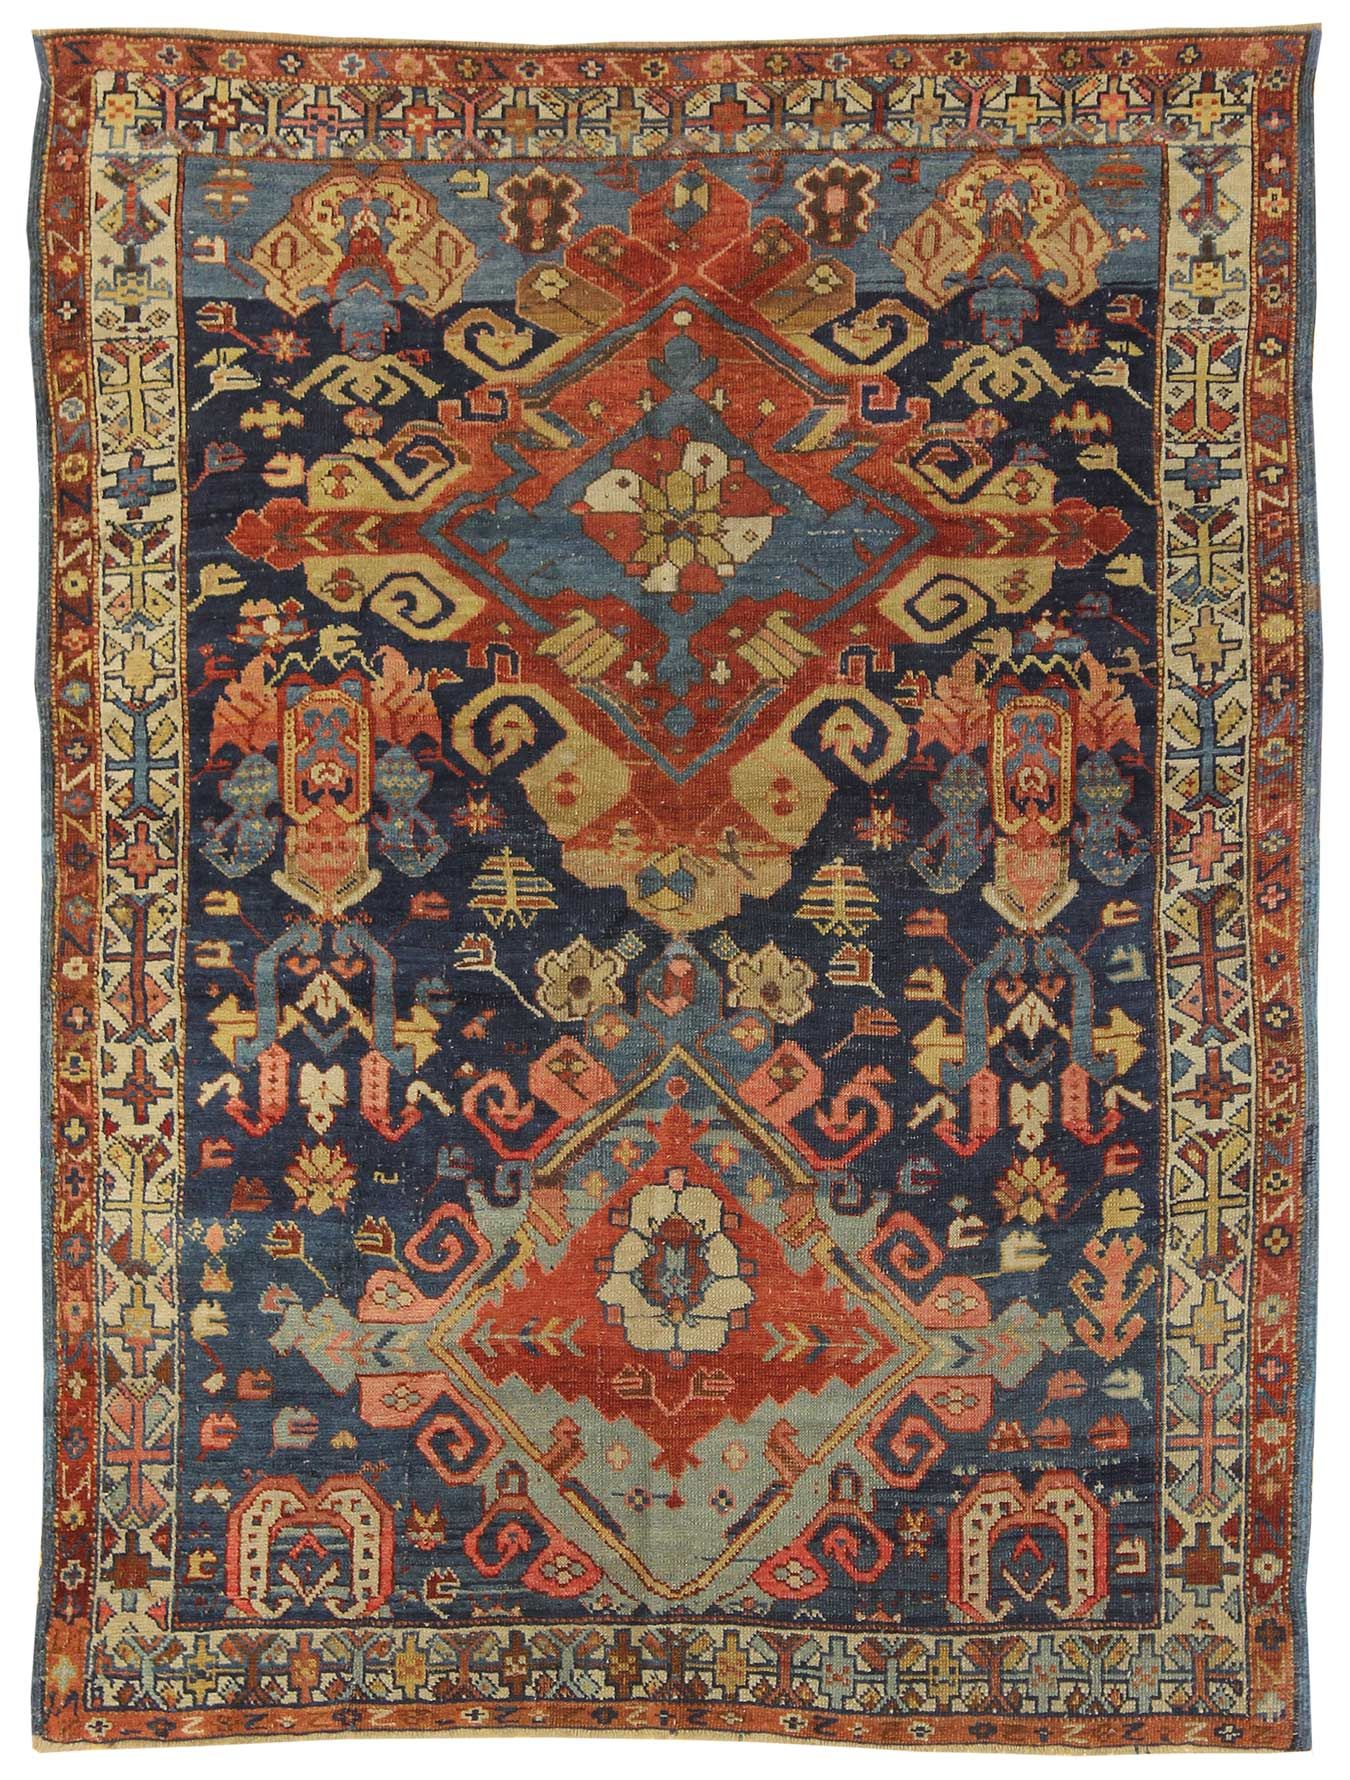 Tappeti Indiani Ricamati Antique Tribal And Other Small Rugs Gallery Antique Seychour Rug